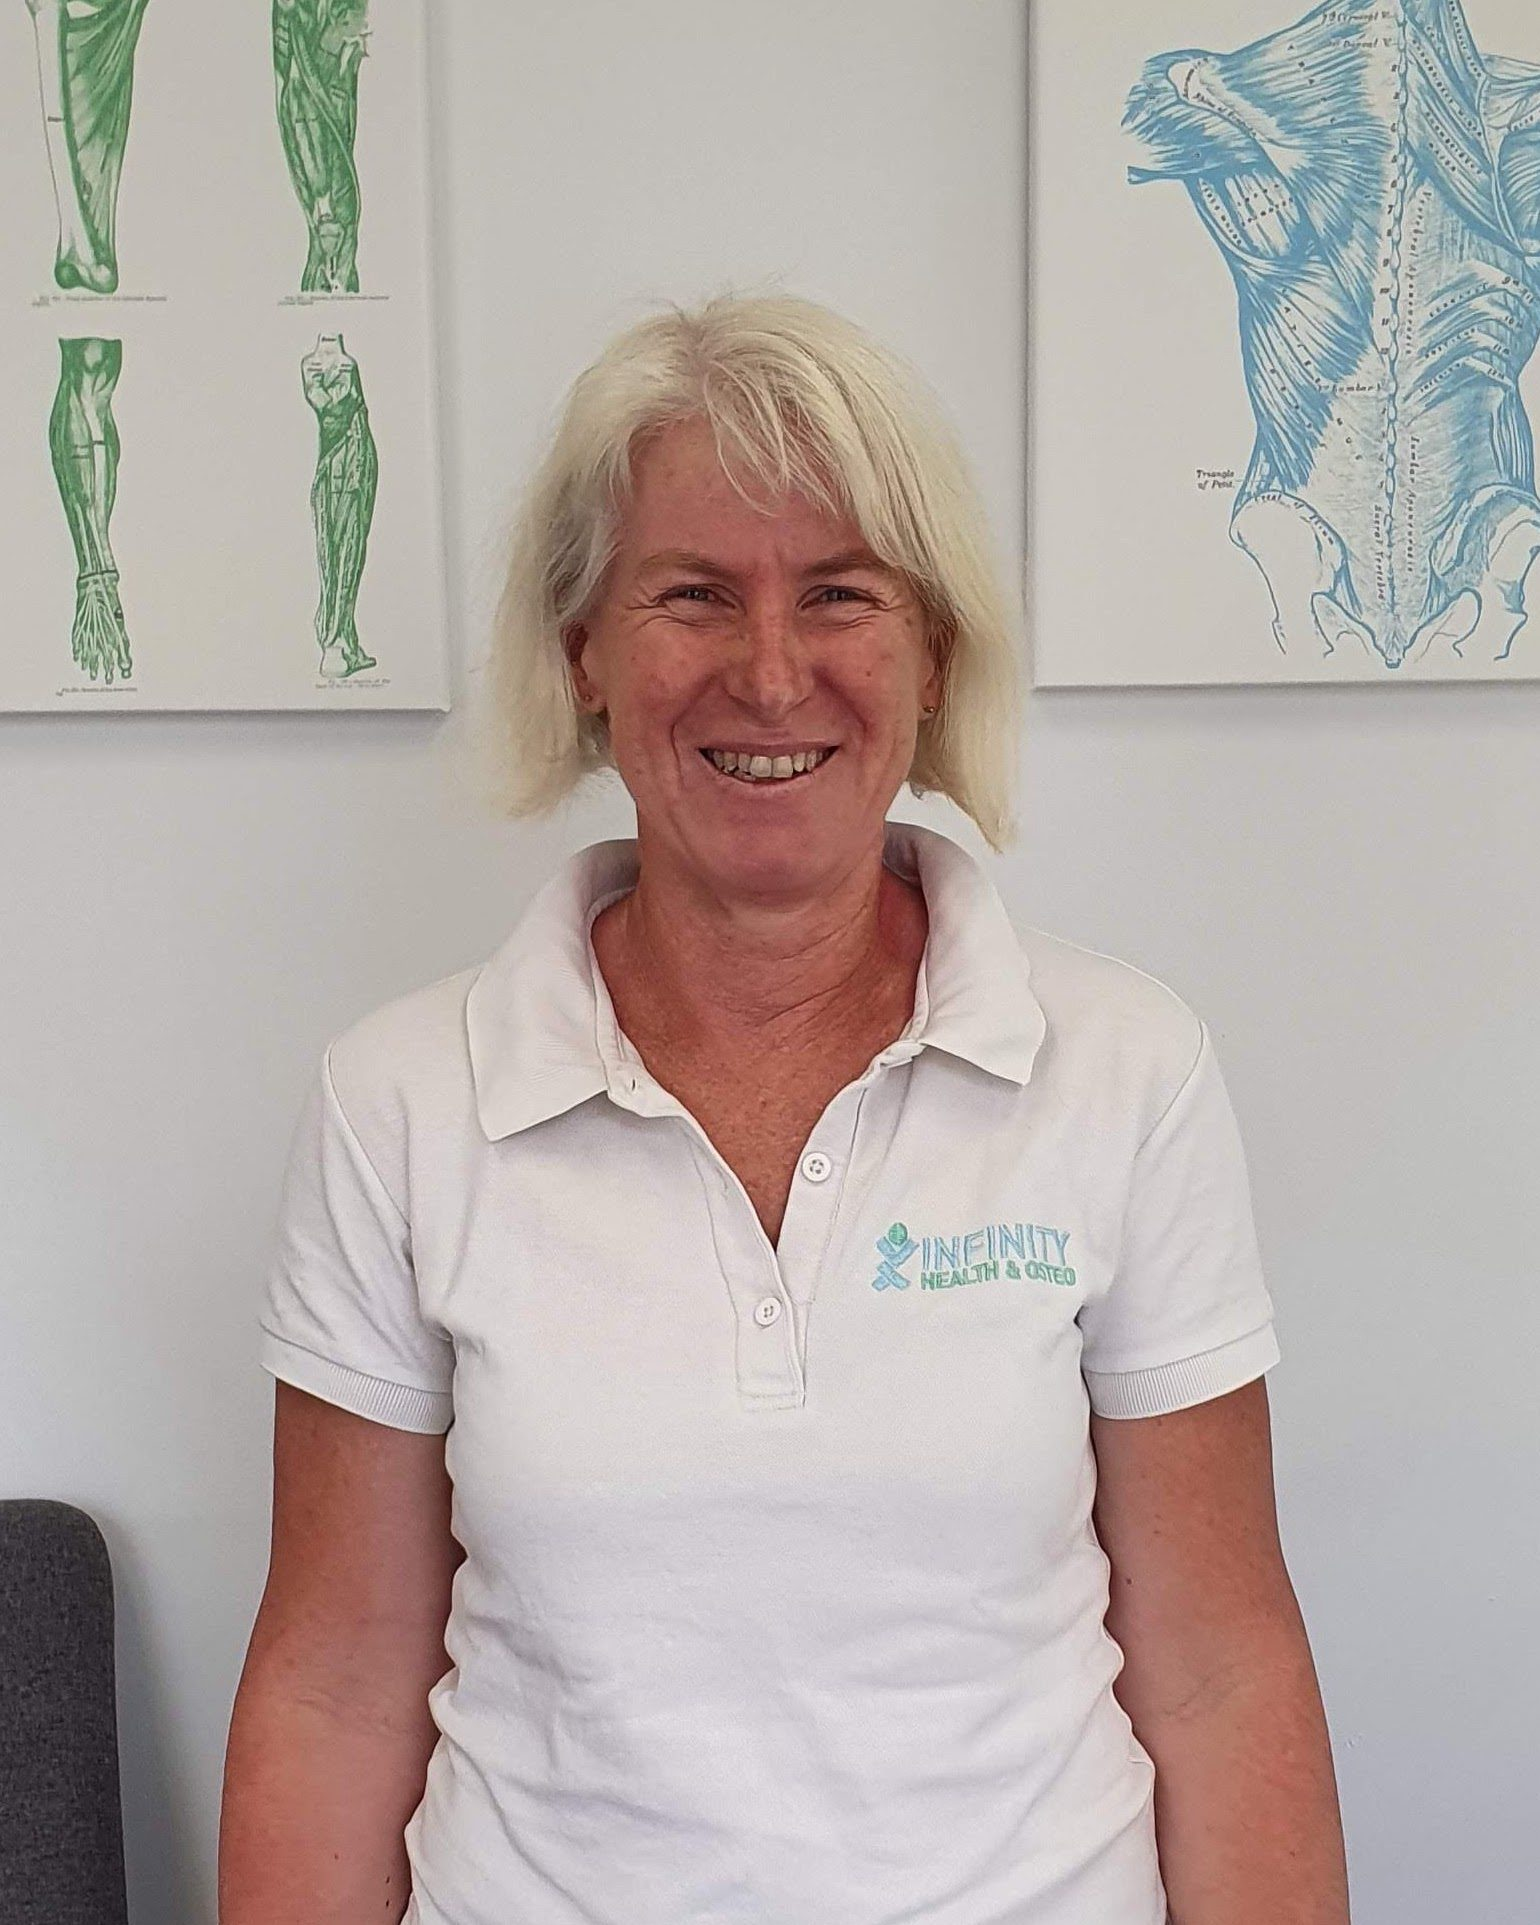 Remedial massage therapist Margit smiling in Infinity uniform at templestowe clinic